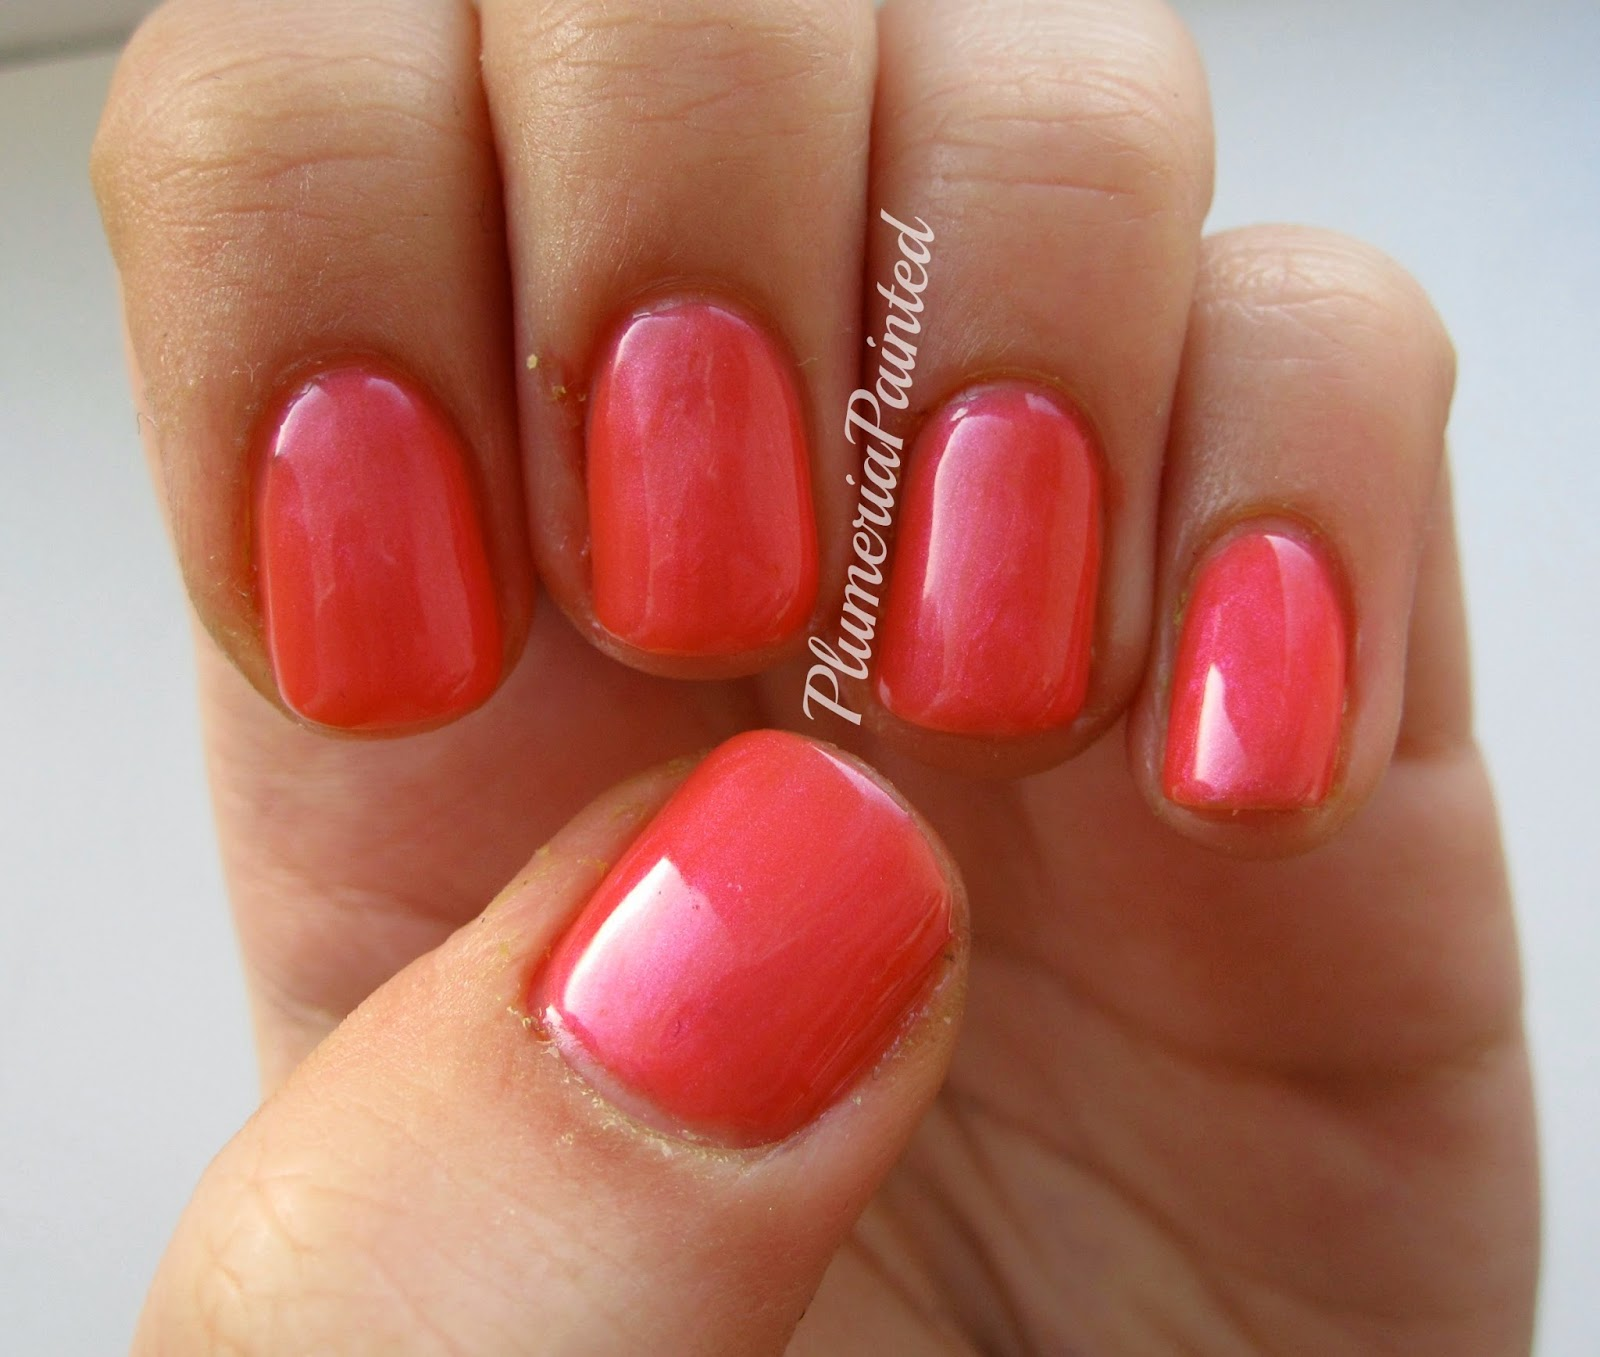 PlumeriaPainted: Pink Nails: Body Collection - Orange Pink (no name)